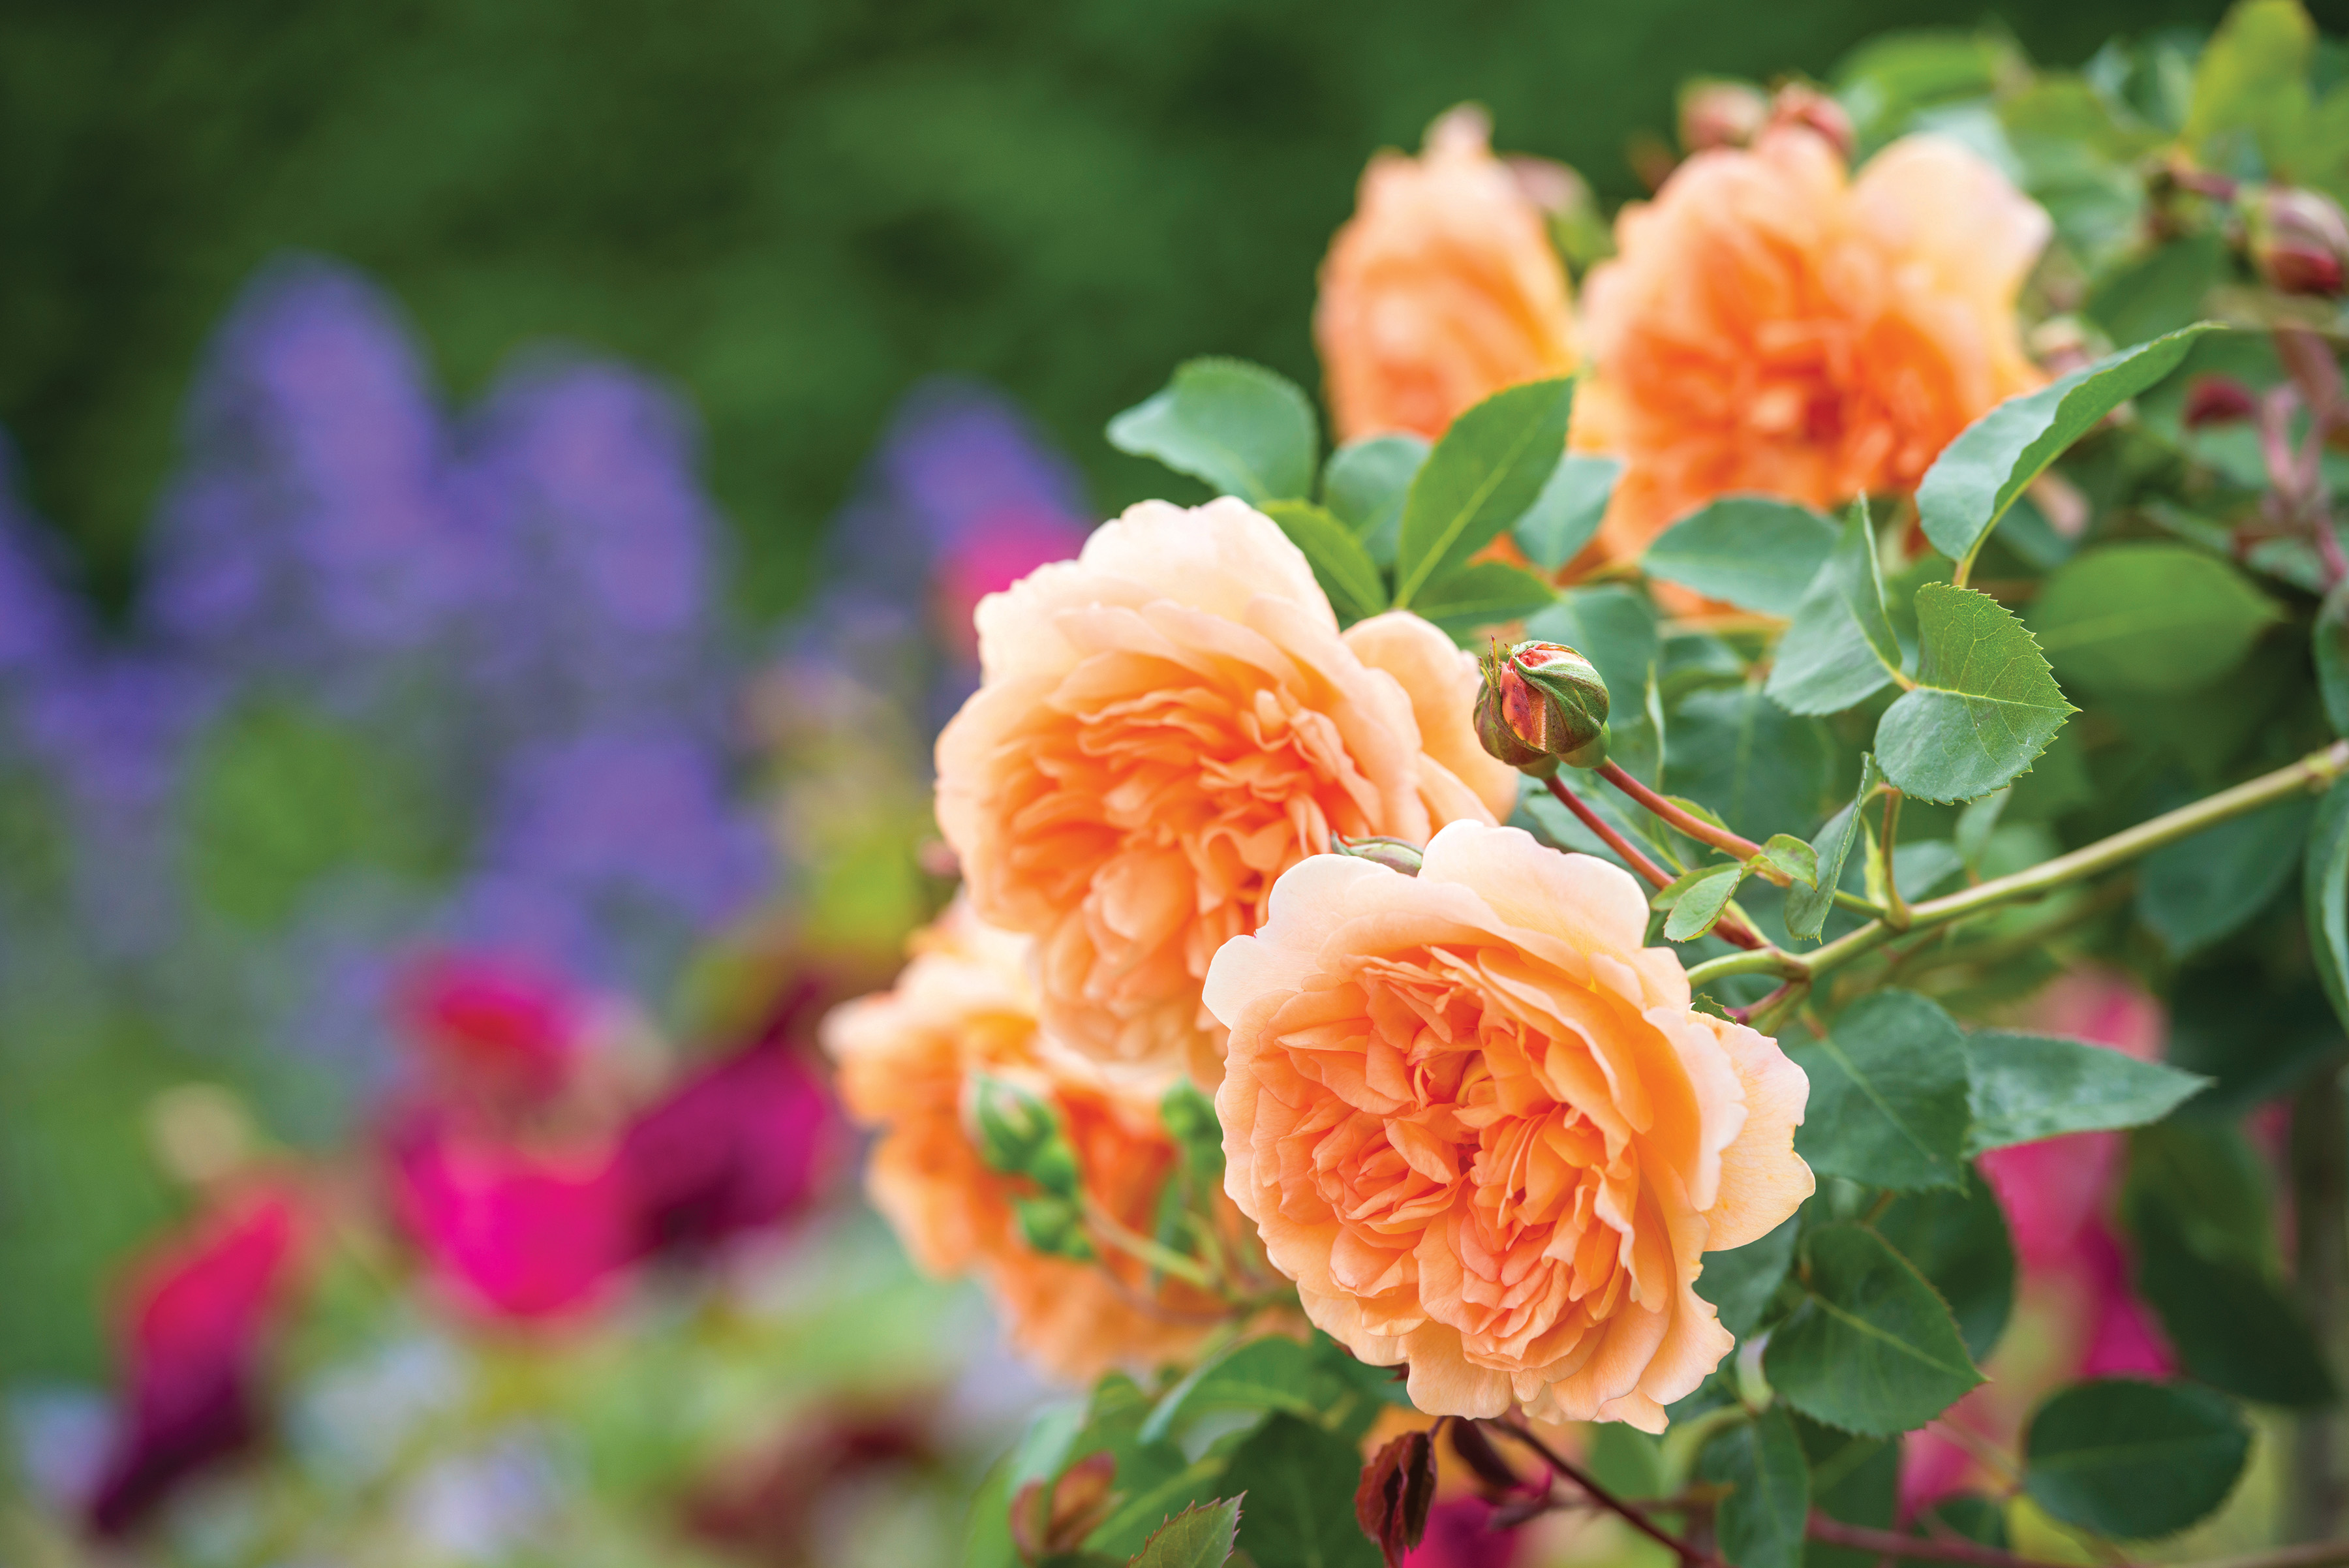 Roses In Garden: Rose To Be Named After Dame Judi Dench At The RHS Chelsea